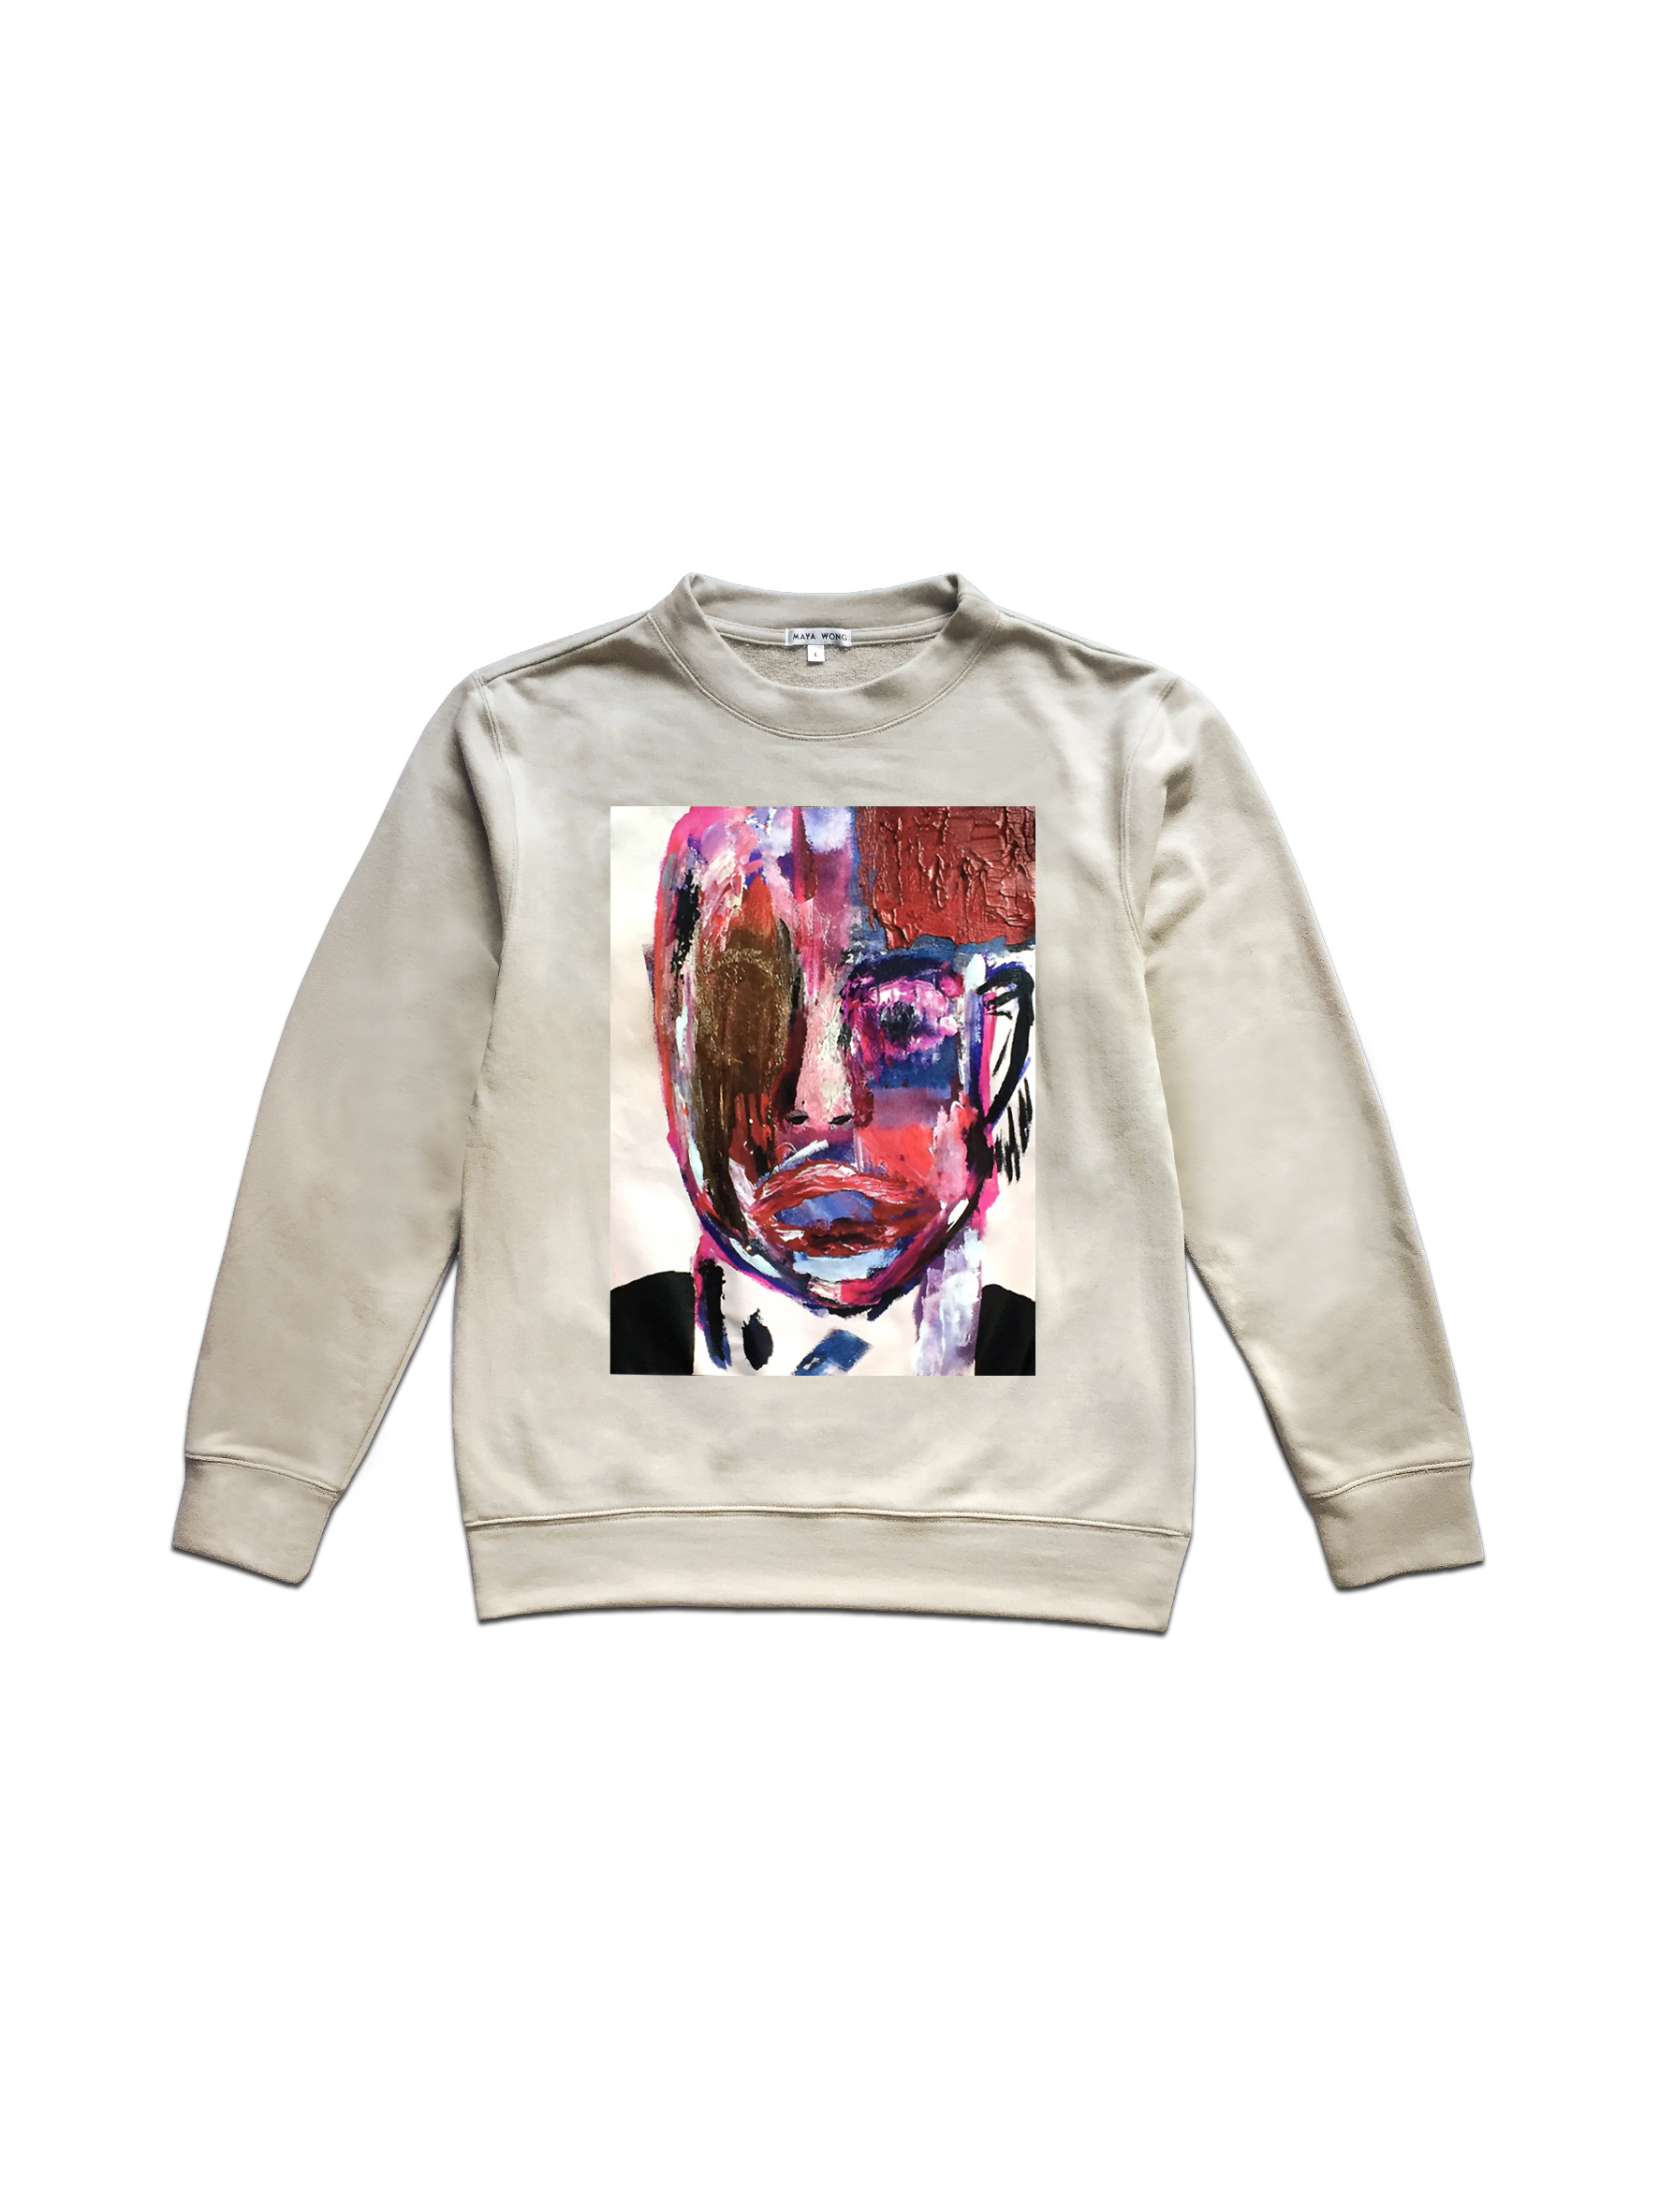 FELIX_ATKINSON_SWEATER_COL2_1